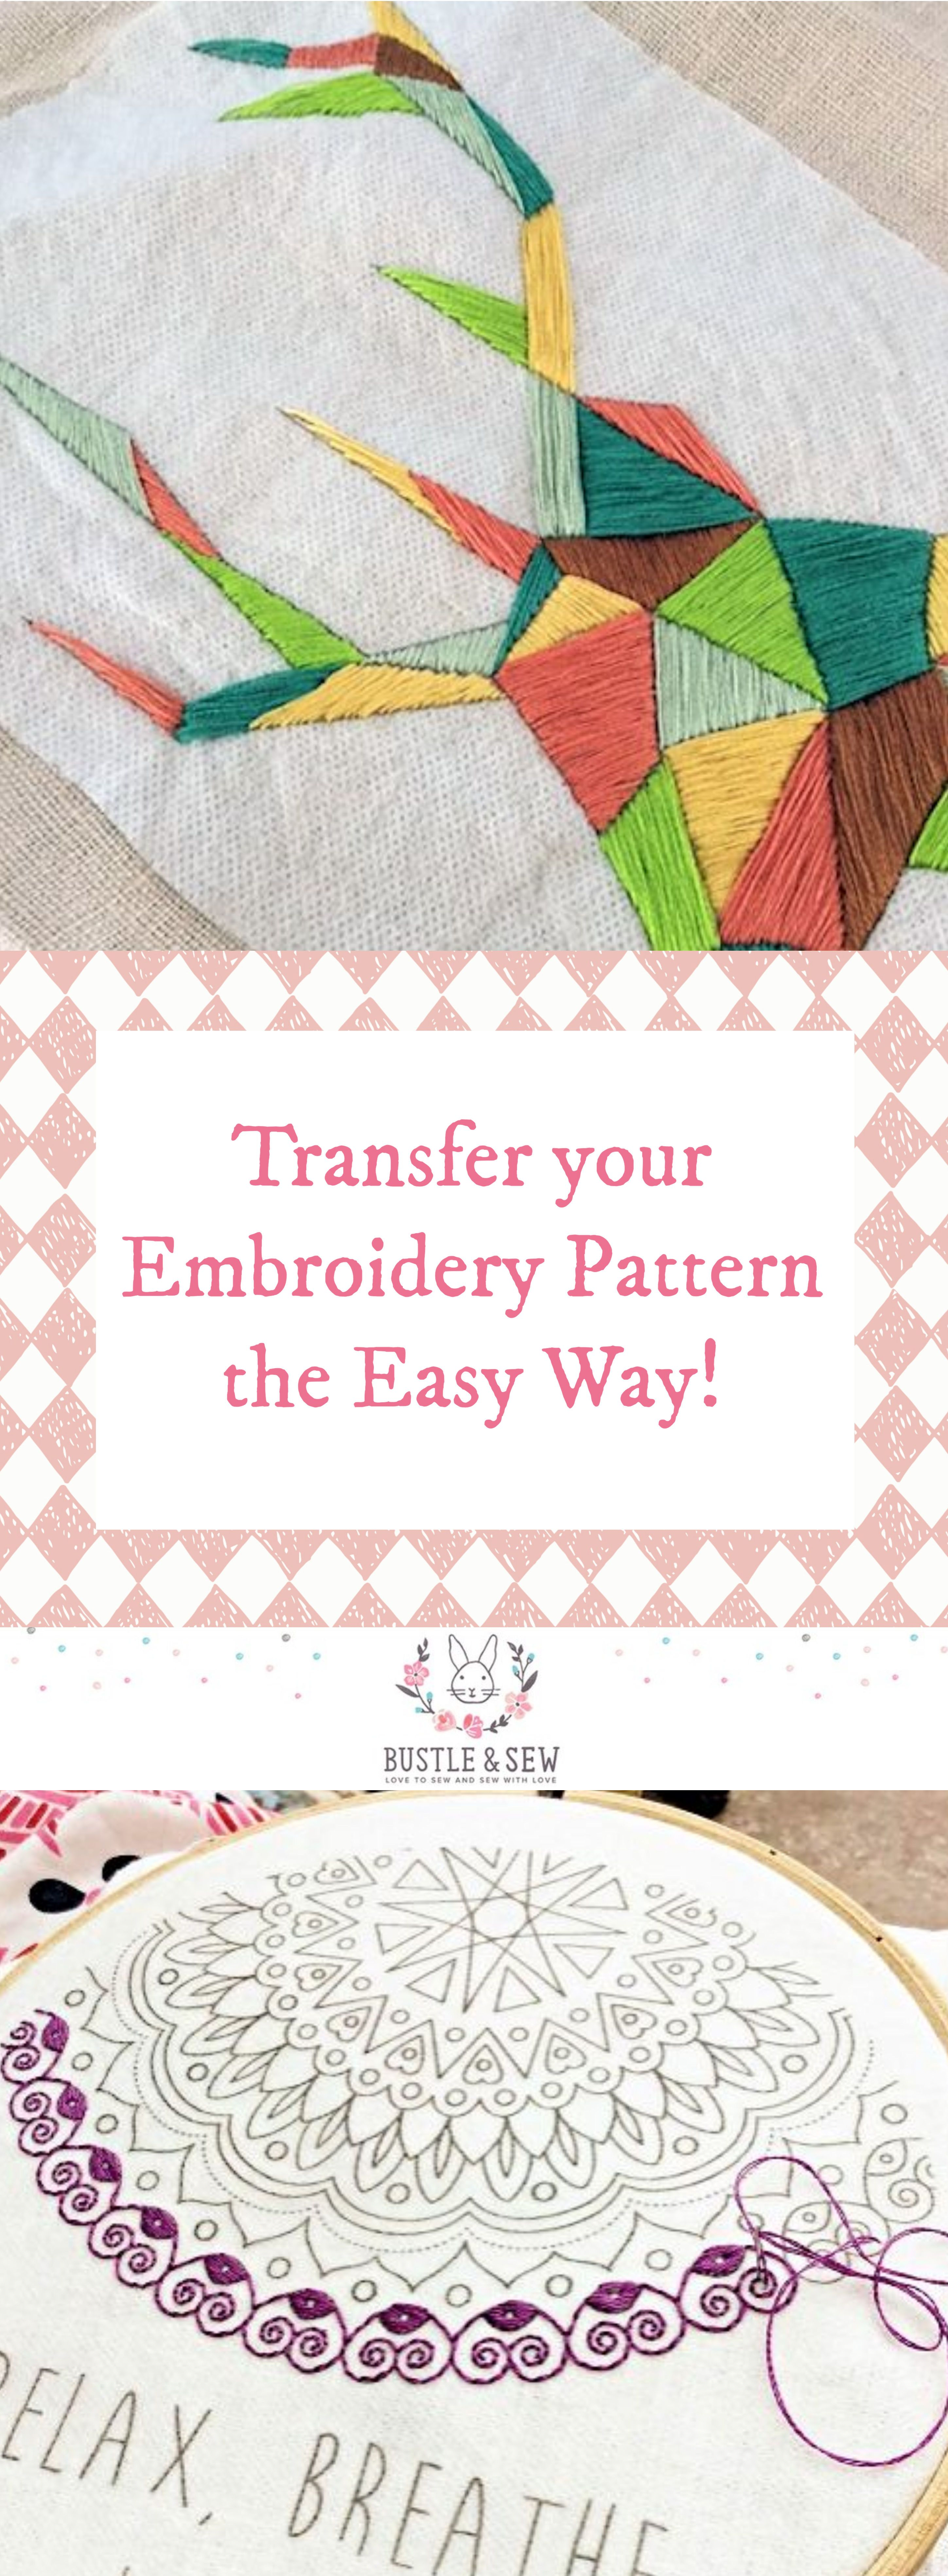 Transfer your embroidery pattern the easy way tutorial from transfer your embroidery pattern the easy way tutorial from bustle sew bankloansurffo Gallery